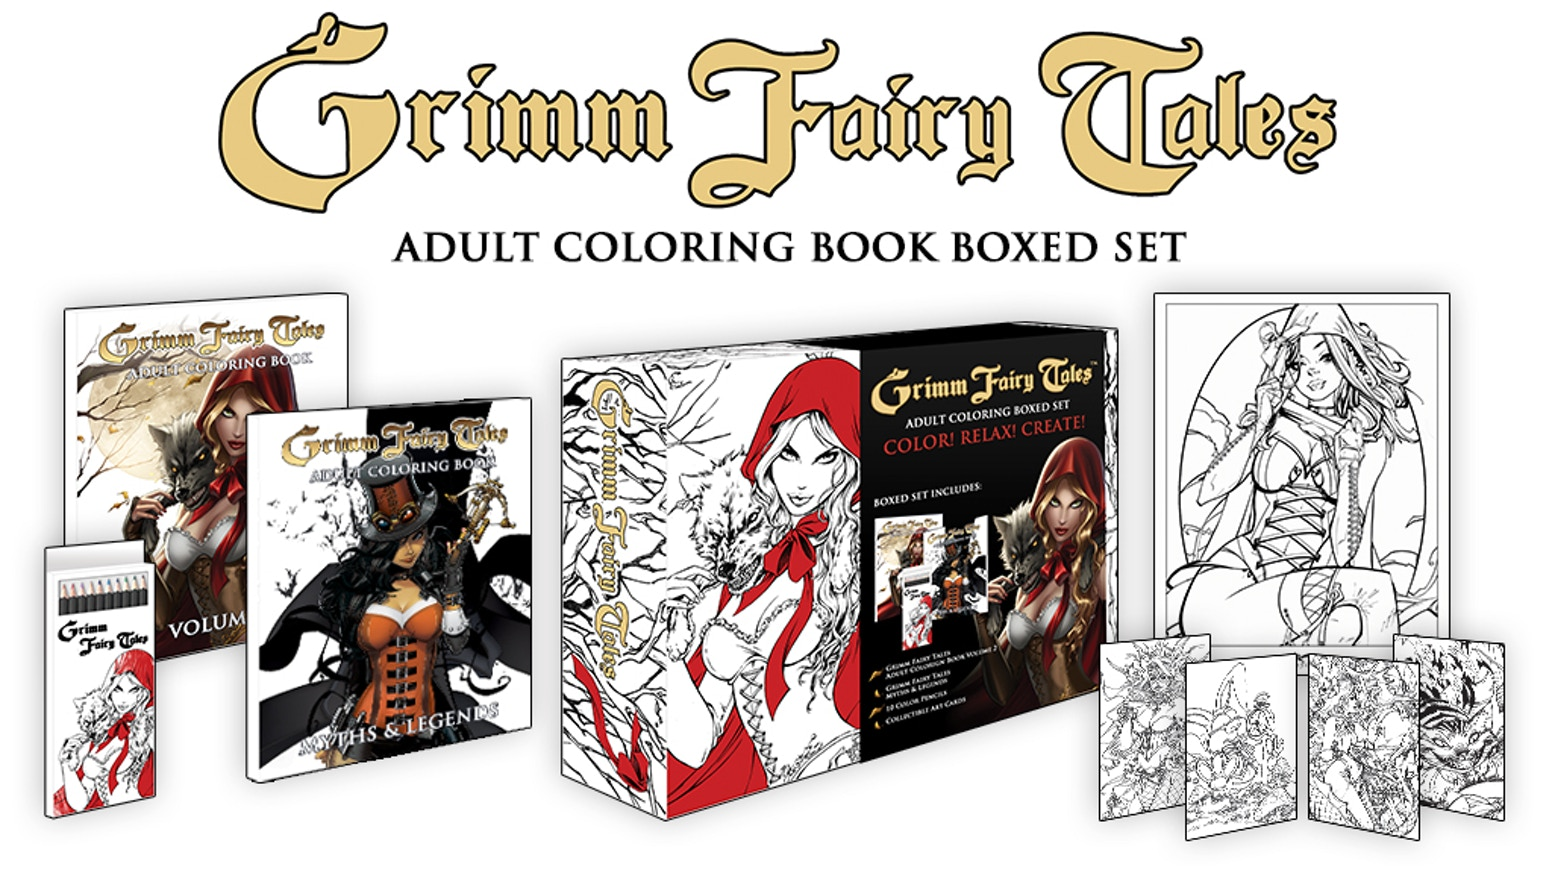 Grimm Fairy Tales Coloring Book Boxed Set by Joe Brusha — Kickstarter